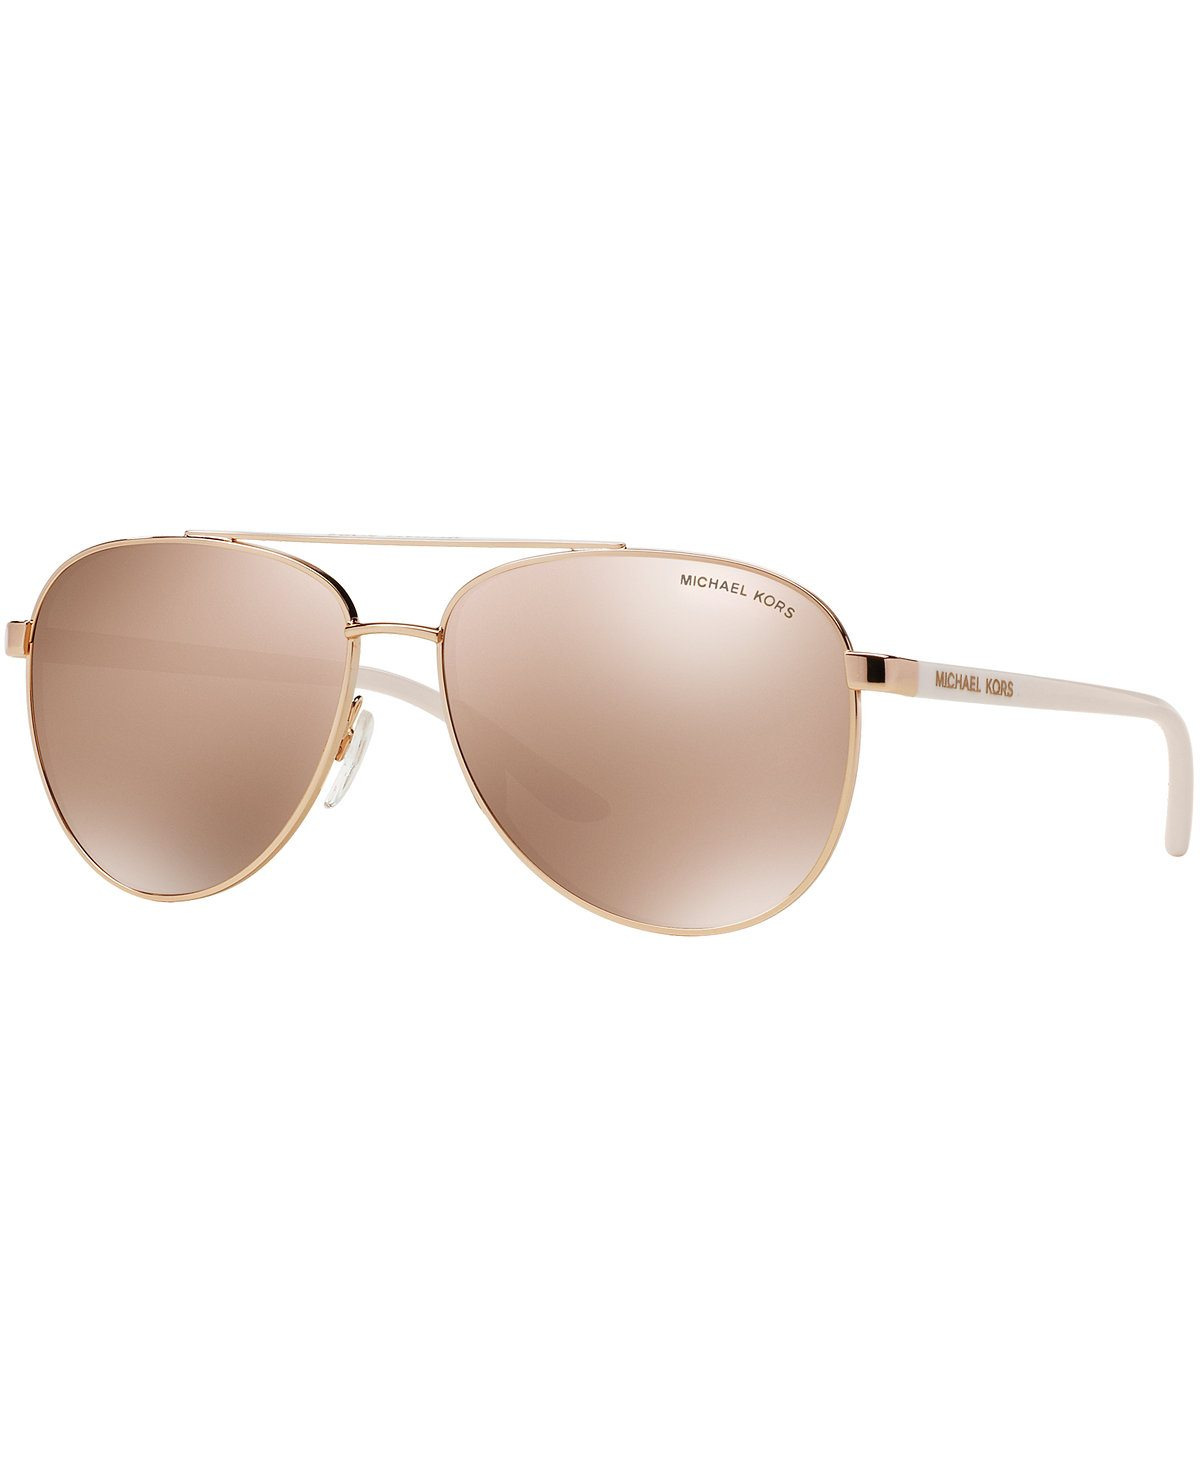 Thumbnail for Can wearing rose-colored sunglasses actually boost your mood?